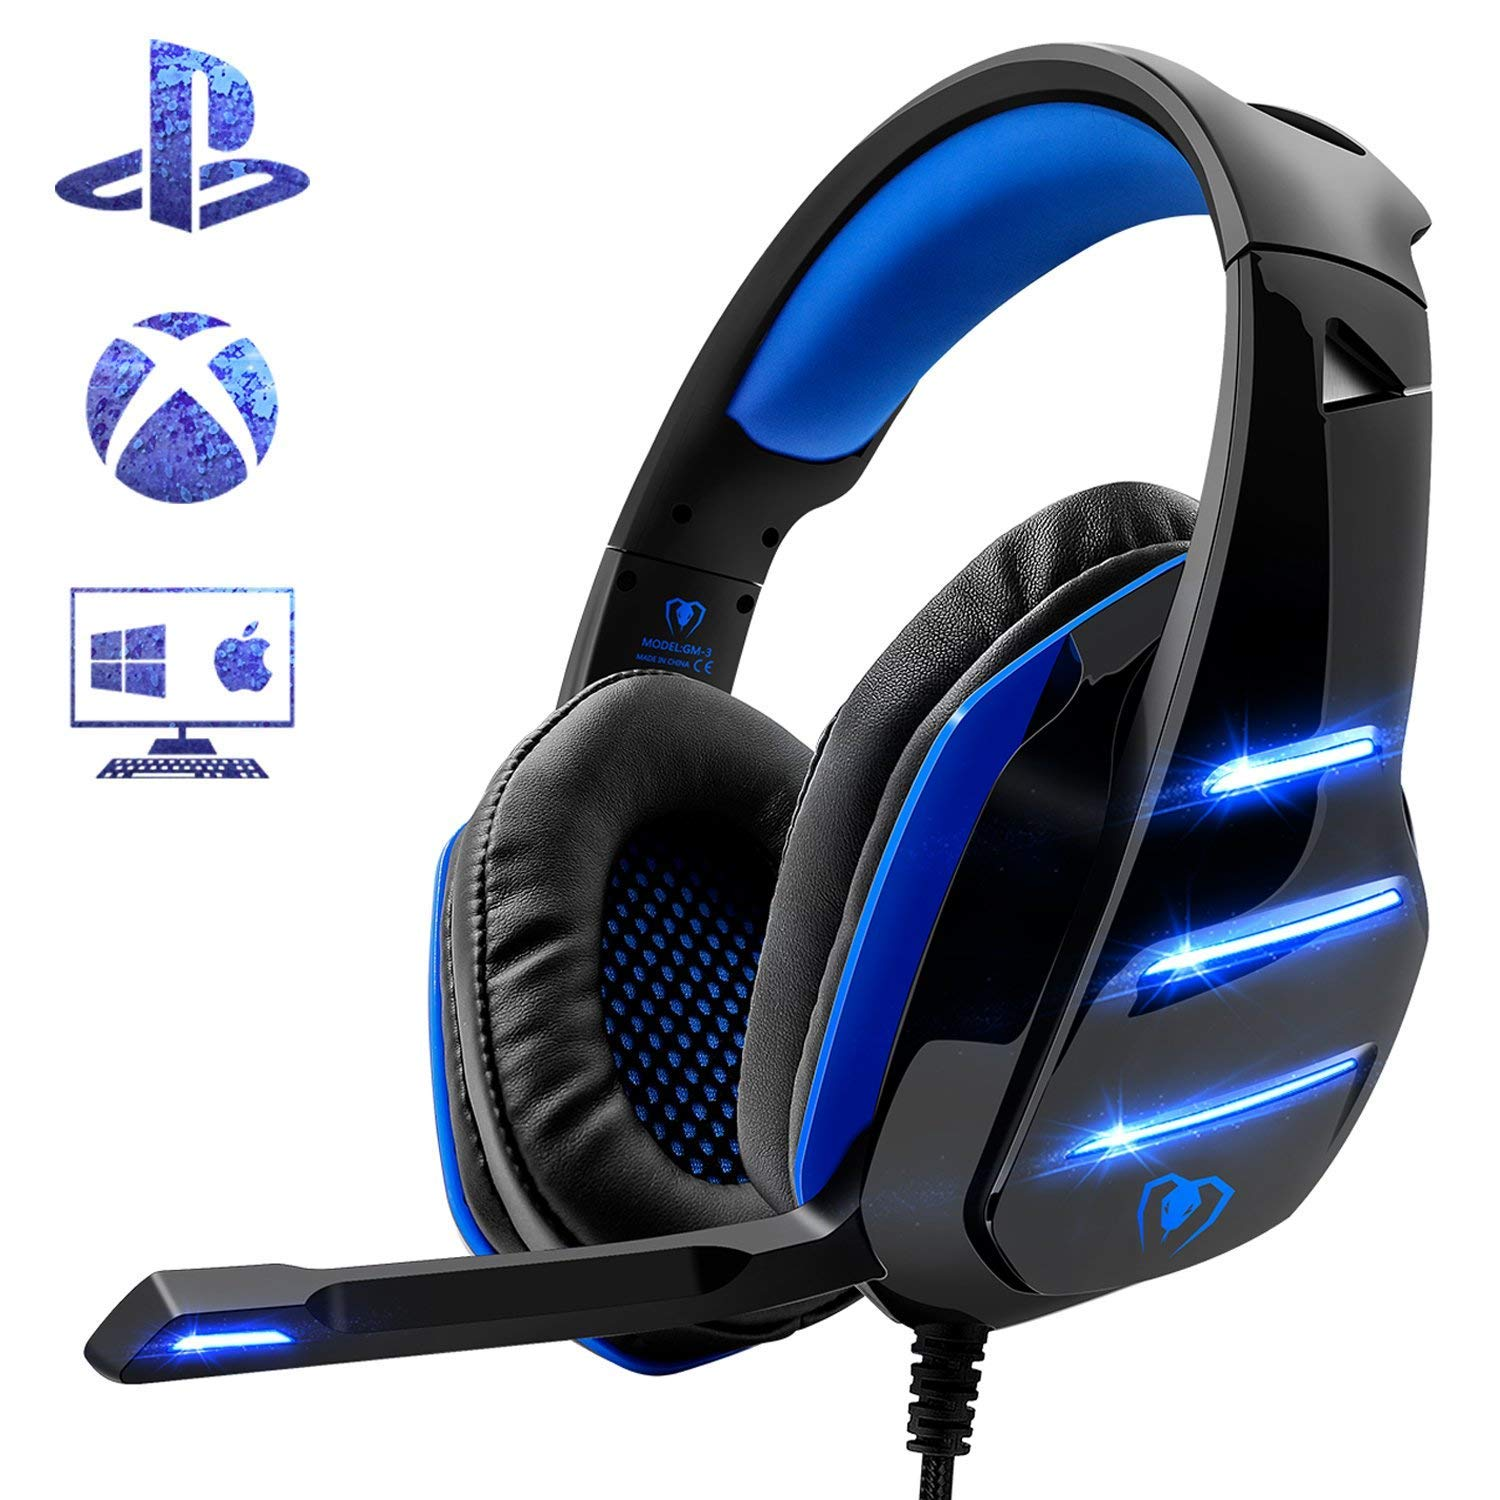 Cascos inalambricos gaming https://amzn.to/2Olk1n4